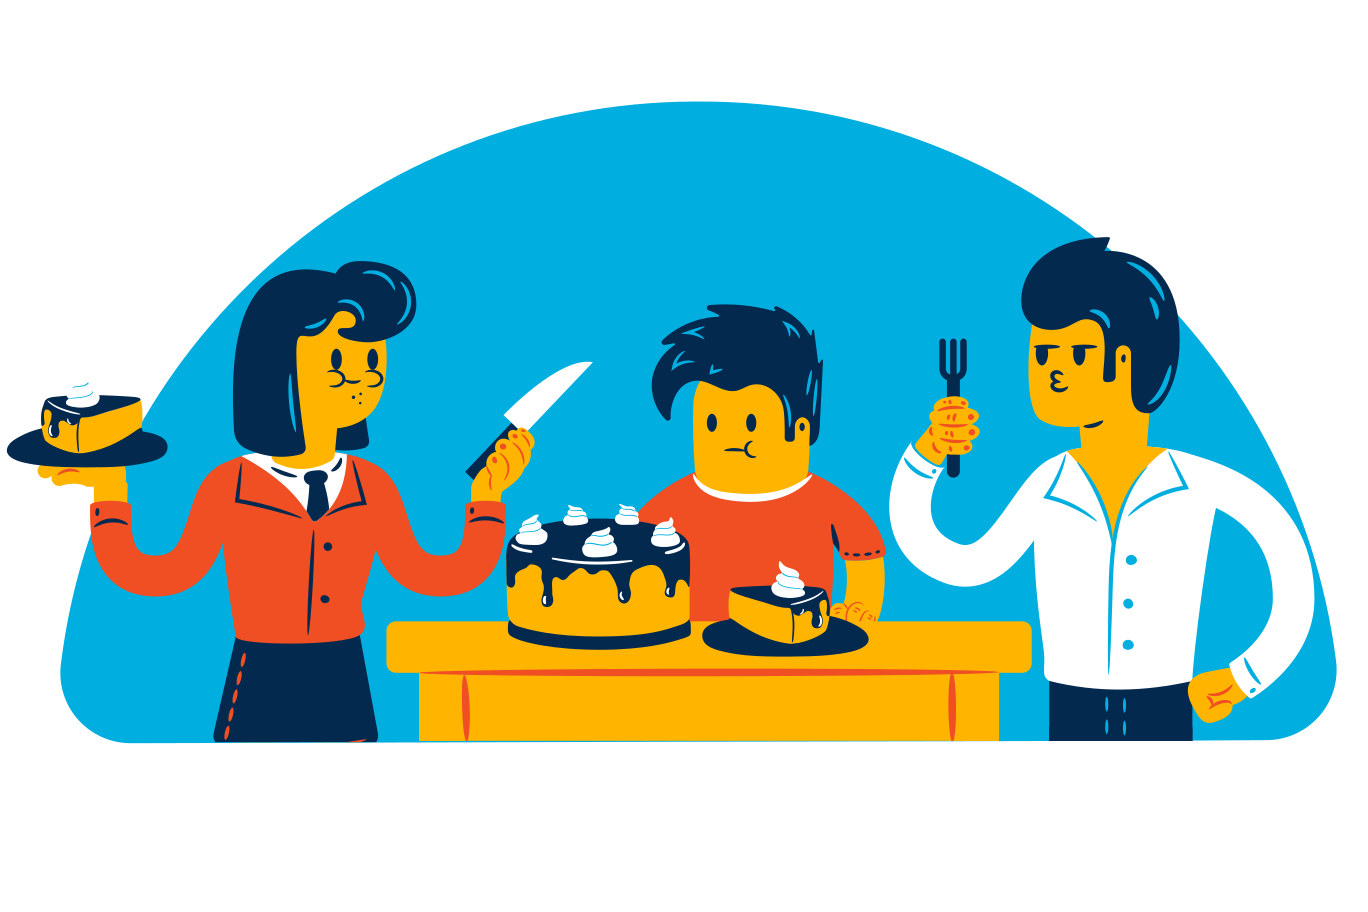 style Eating cake Vector images in PNG and SVG   Icons8 Illustrations